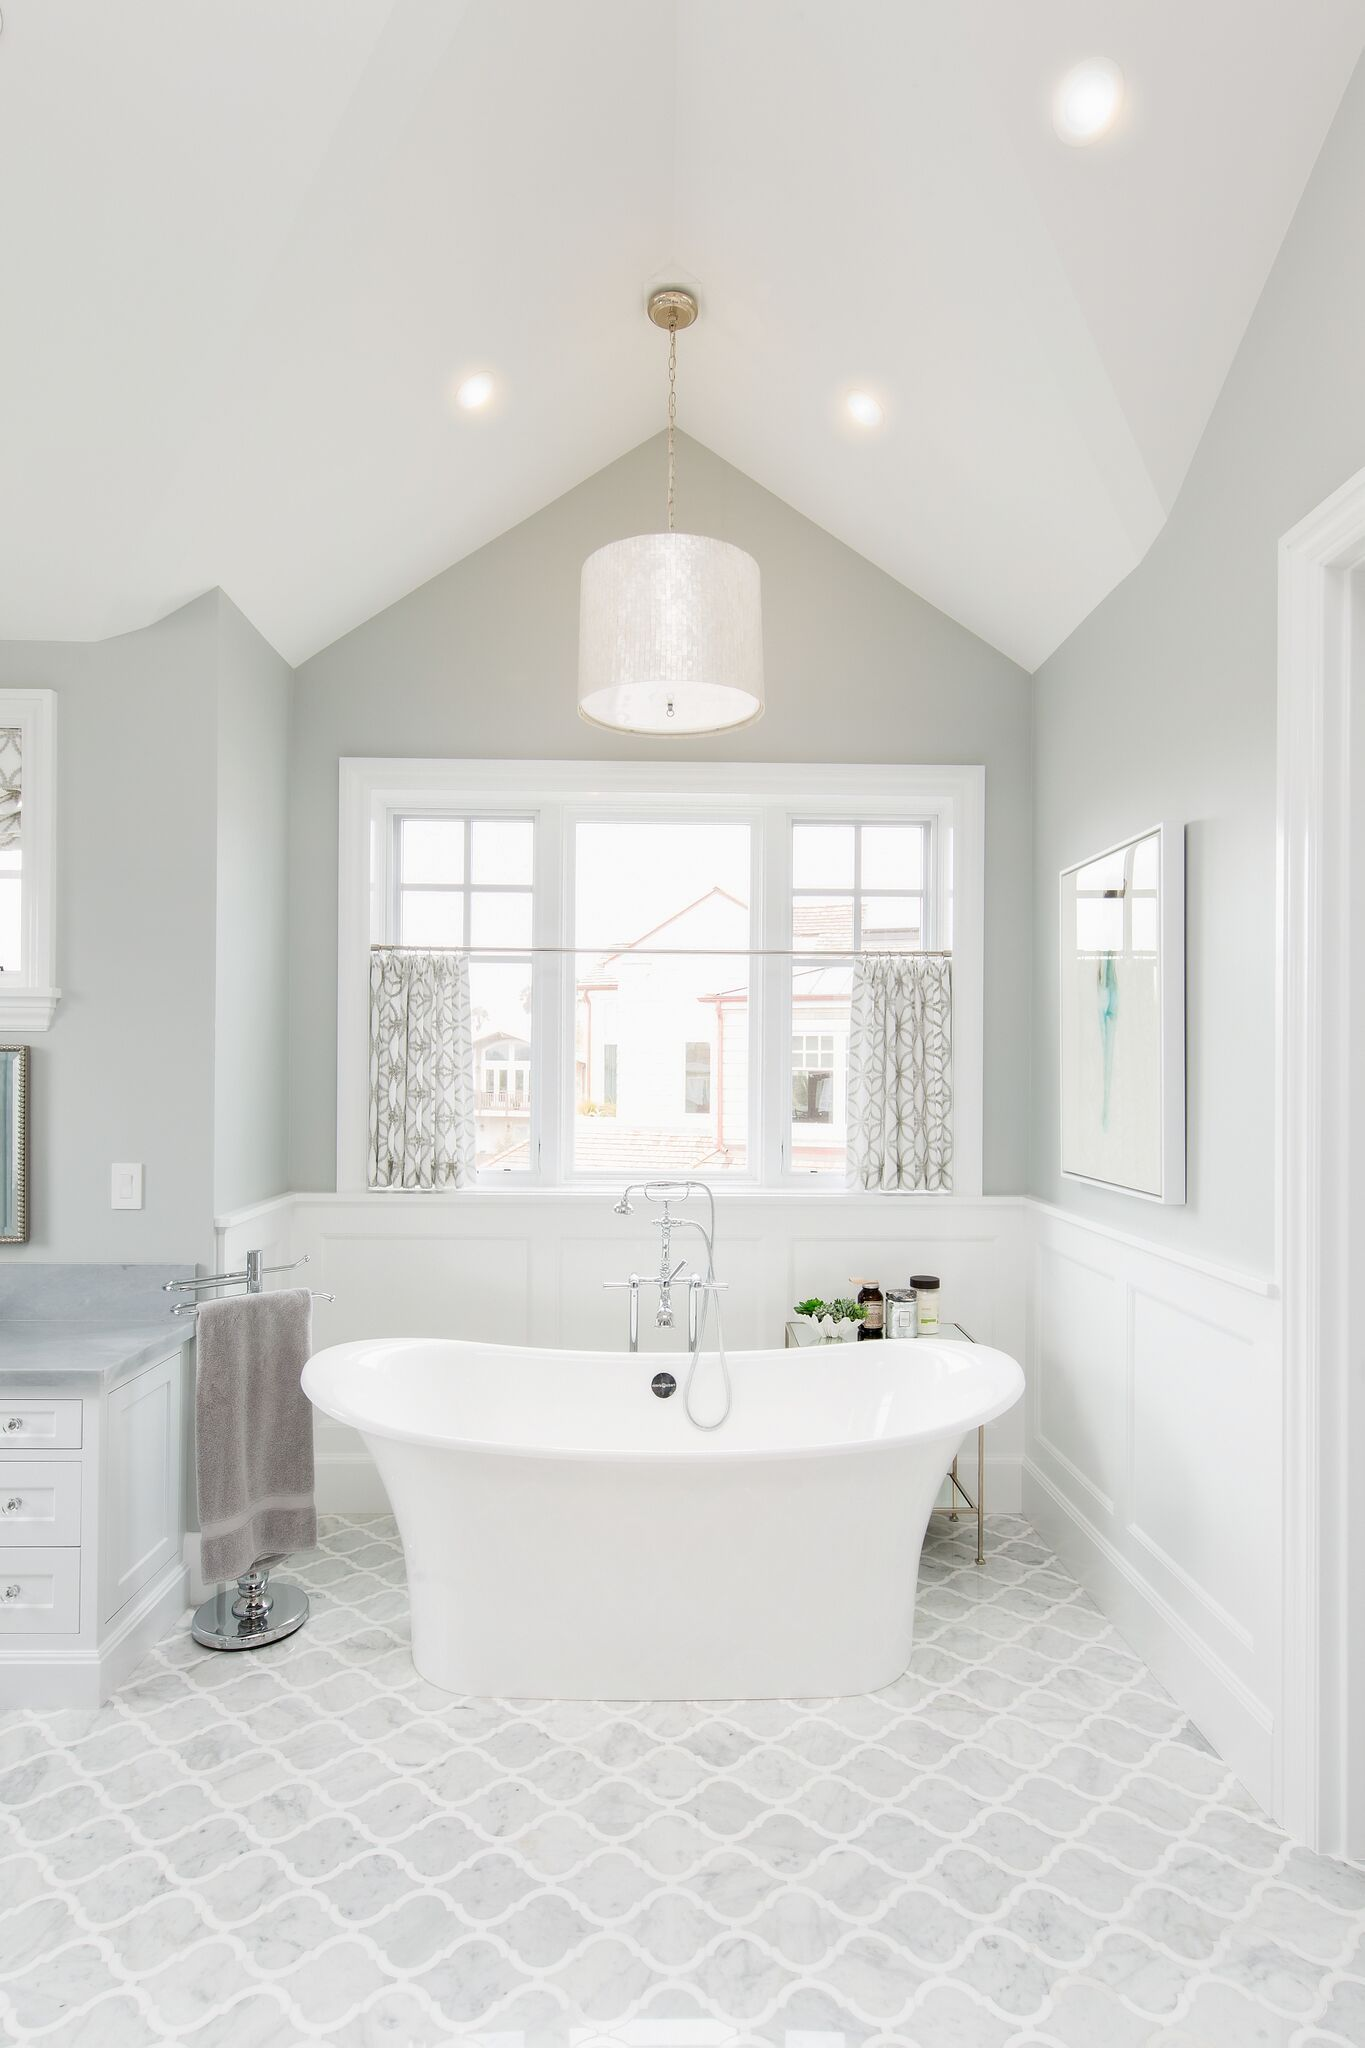 Gray And White Bedroom: The Master Bathroom Features A Classic Grey And White